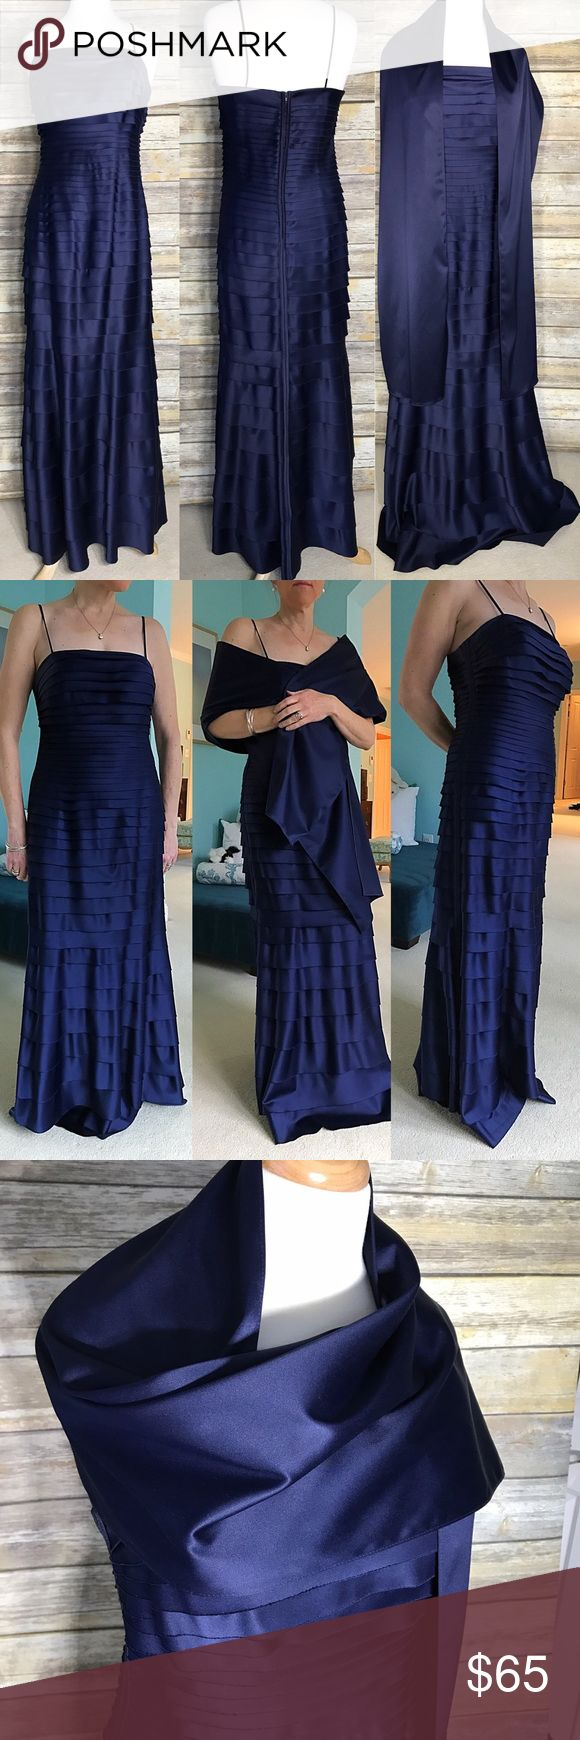 """Navy Blue Formal Gown, Spaghetti Straps, W/ Wrap Perfect Navy color in most flattering design and fabric imaginable. Horizontal Shutter pleats in nice stretch make this dress hide any bumpy bits without needing to worry about pantry lines, etc. Size 12 - could fit 10-14 because of stretch. At 5' 7"""" with 2 inch heels, still long so could wear 4 inches. Comes with matching satin wrap. One of my favorites that no longer fits. Worn 1x. Dresses Wedding"""